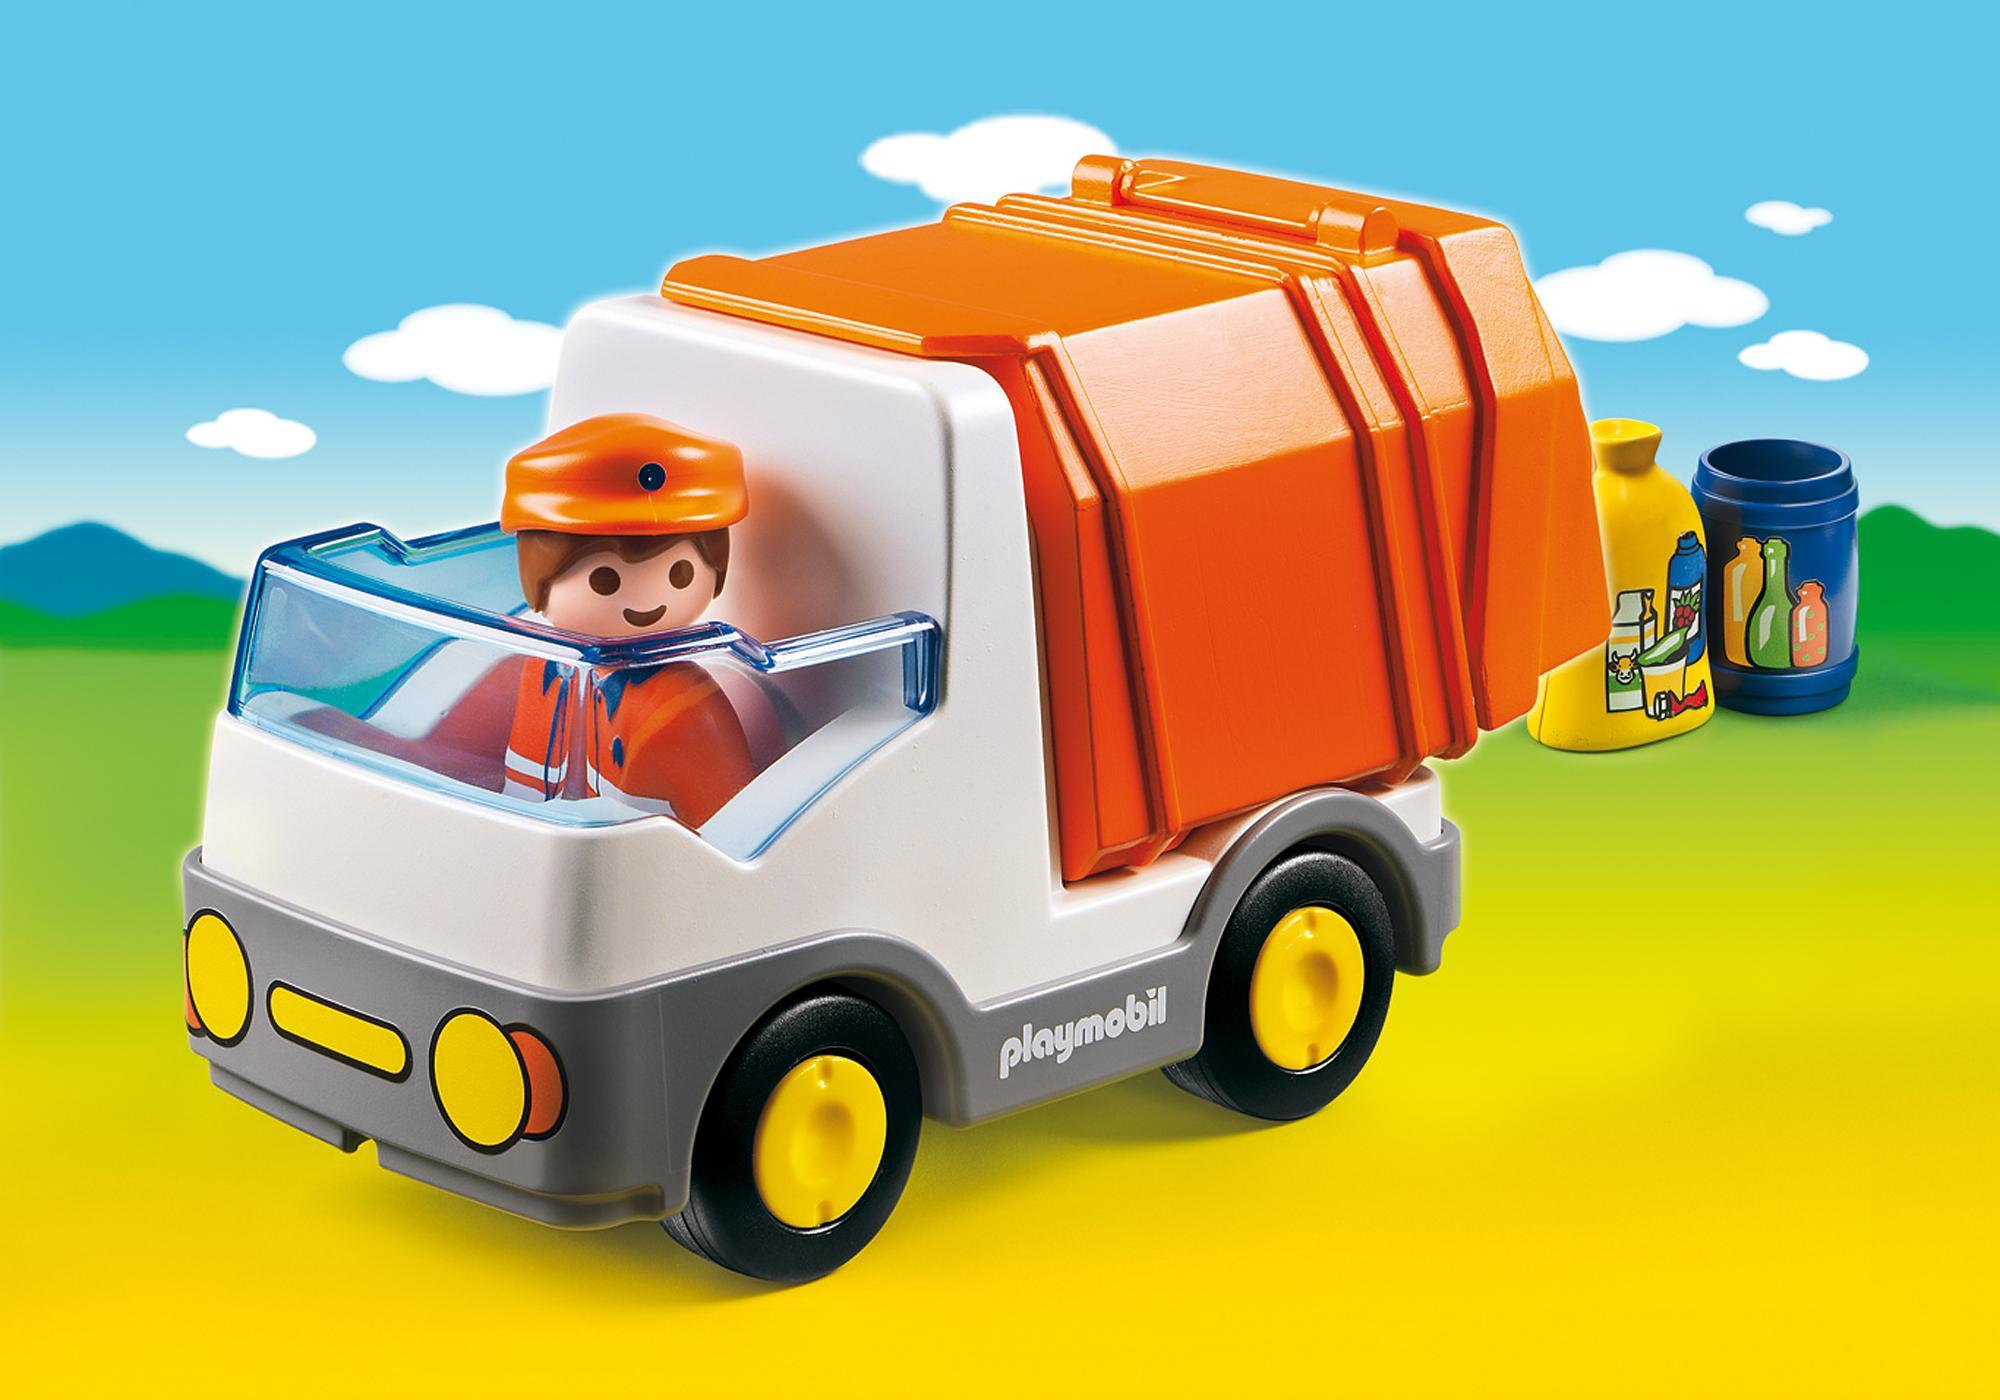 http://media.playmobil.com/i/playmobil/6774_product_detail/1.2.3 Recycling Truck